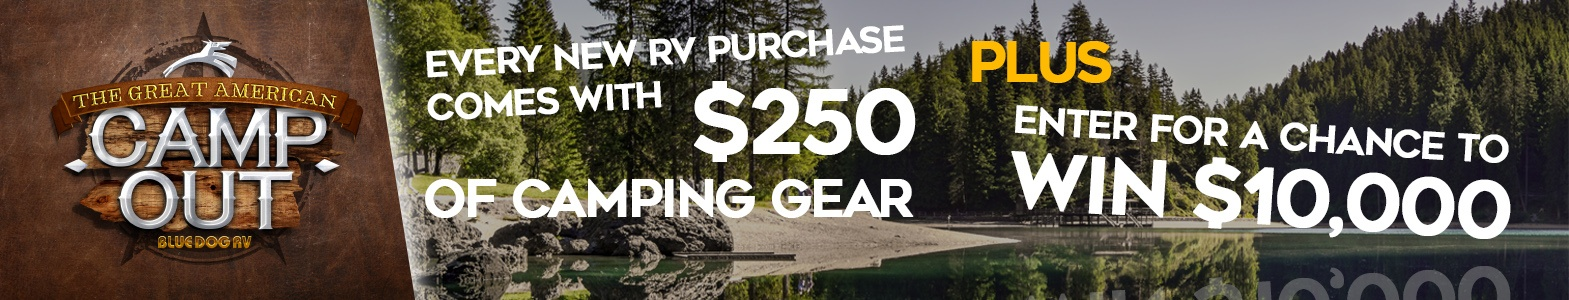 Great American Campout Sale